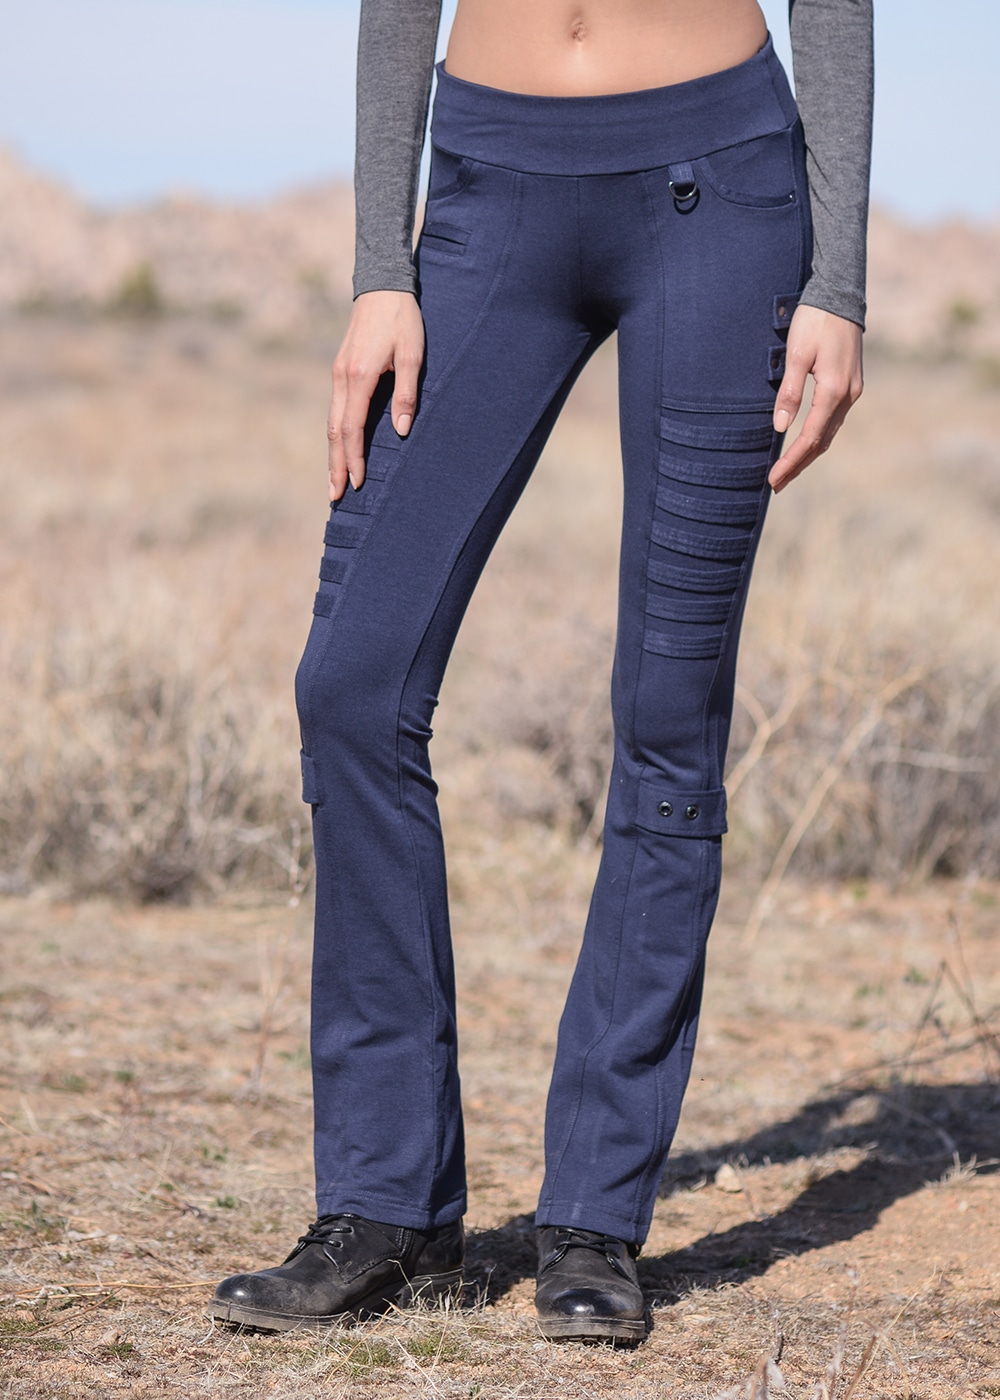 Bamboo and Organic Cotton Evasion Pants in Blue by Nomads Hemp Wear